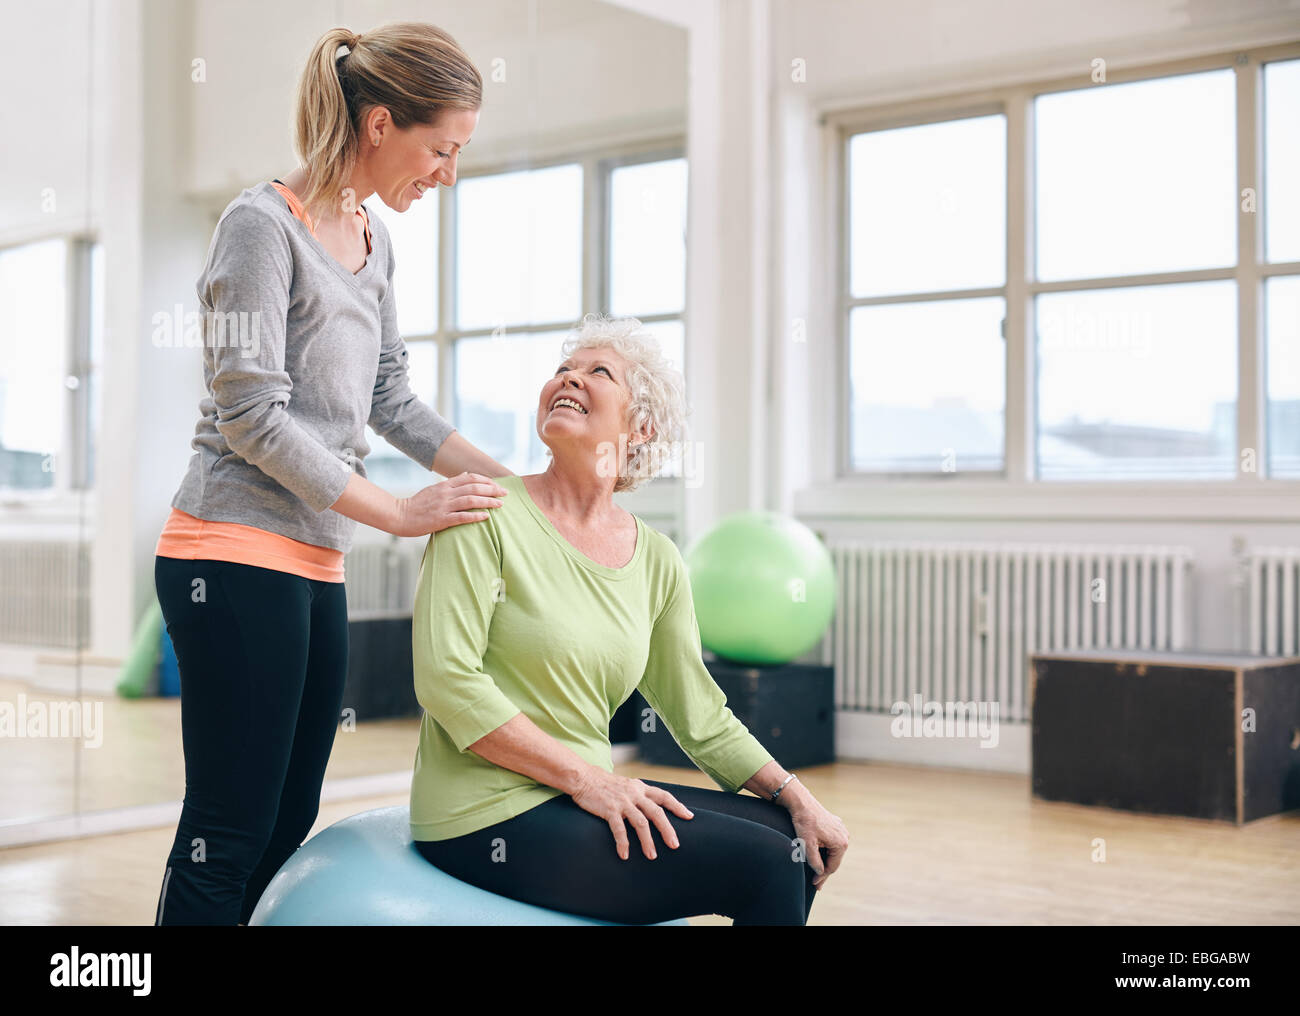 Female instructor assisting senior woman exercising in health club. Older woman assisted by personal trainer at - Stock Image